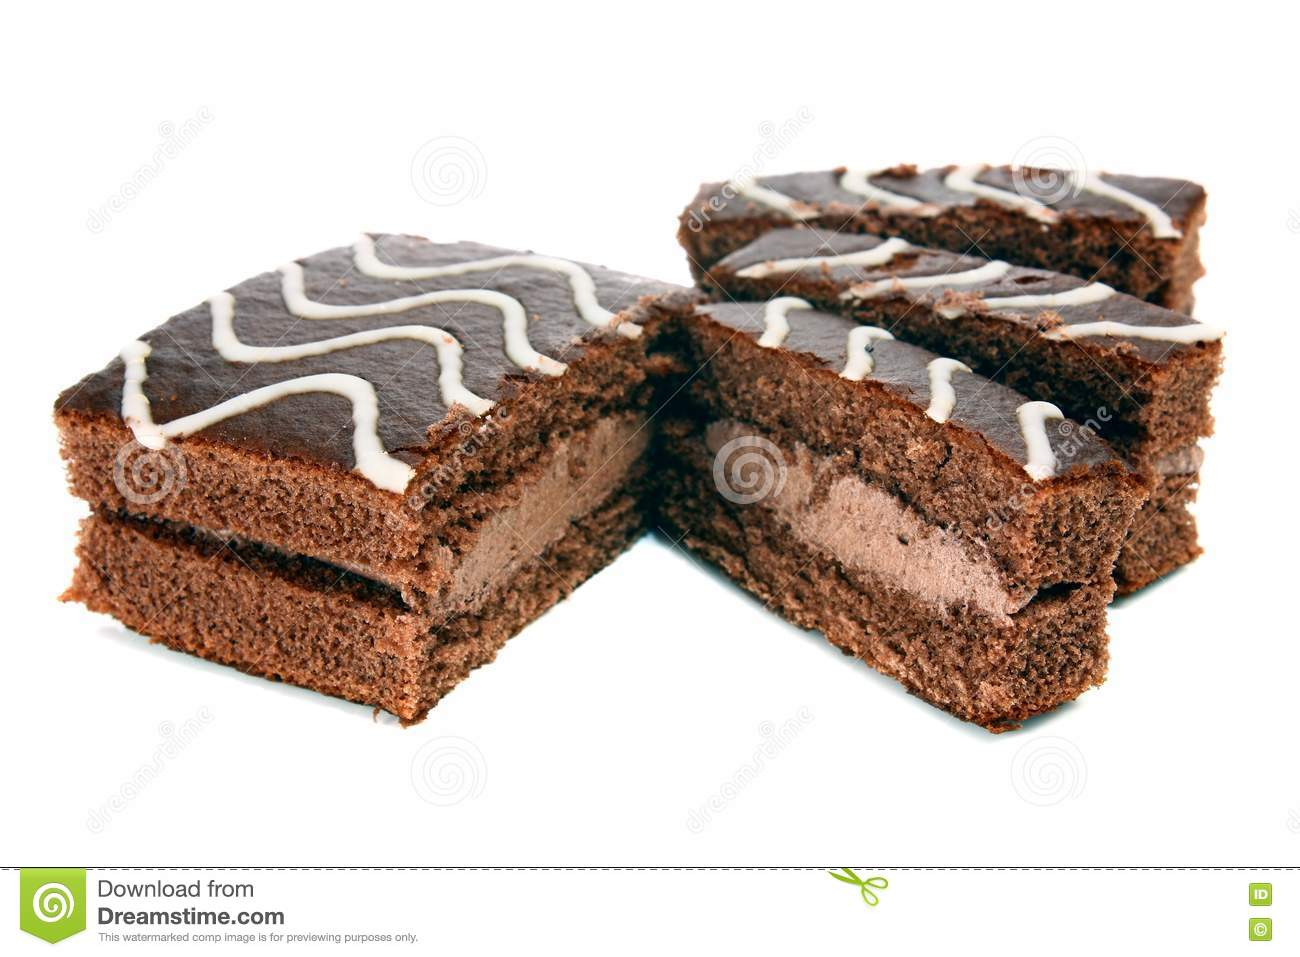 chocolate-pastry-cream-18365772.jpg